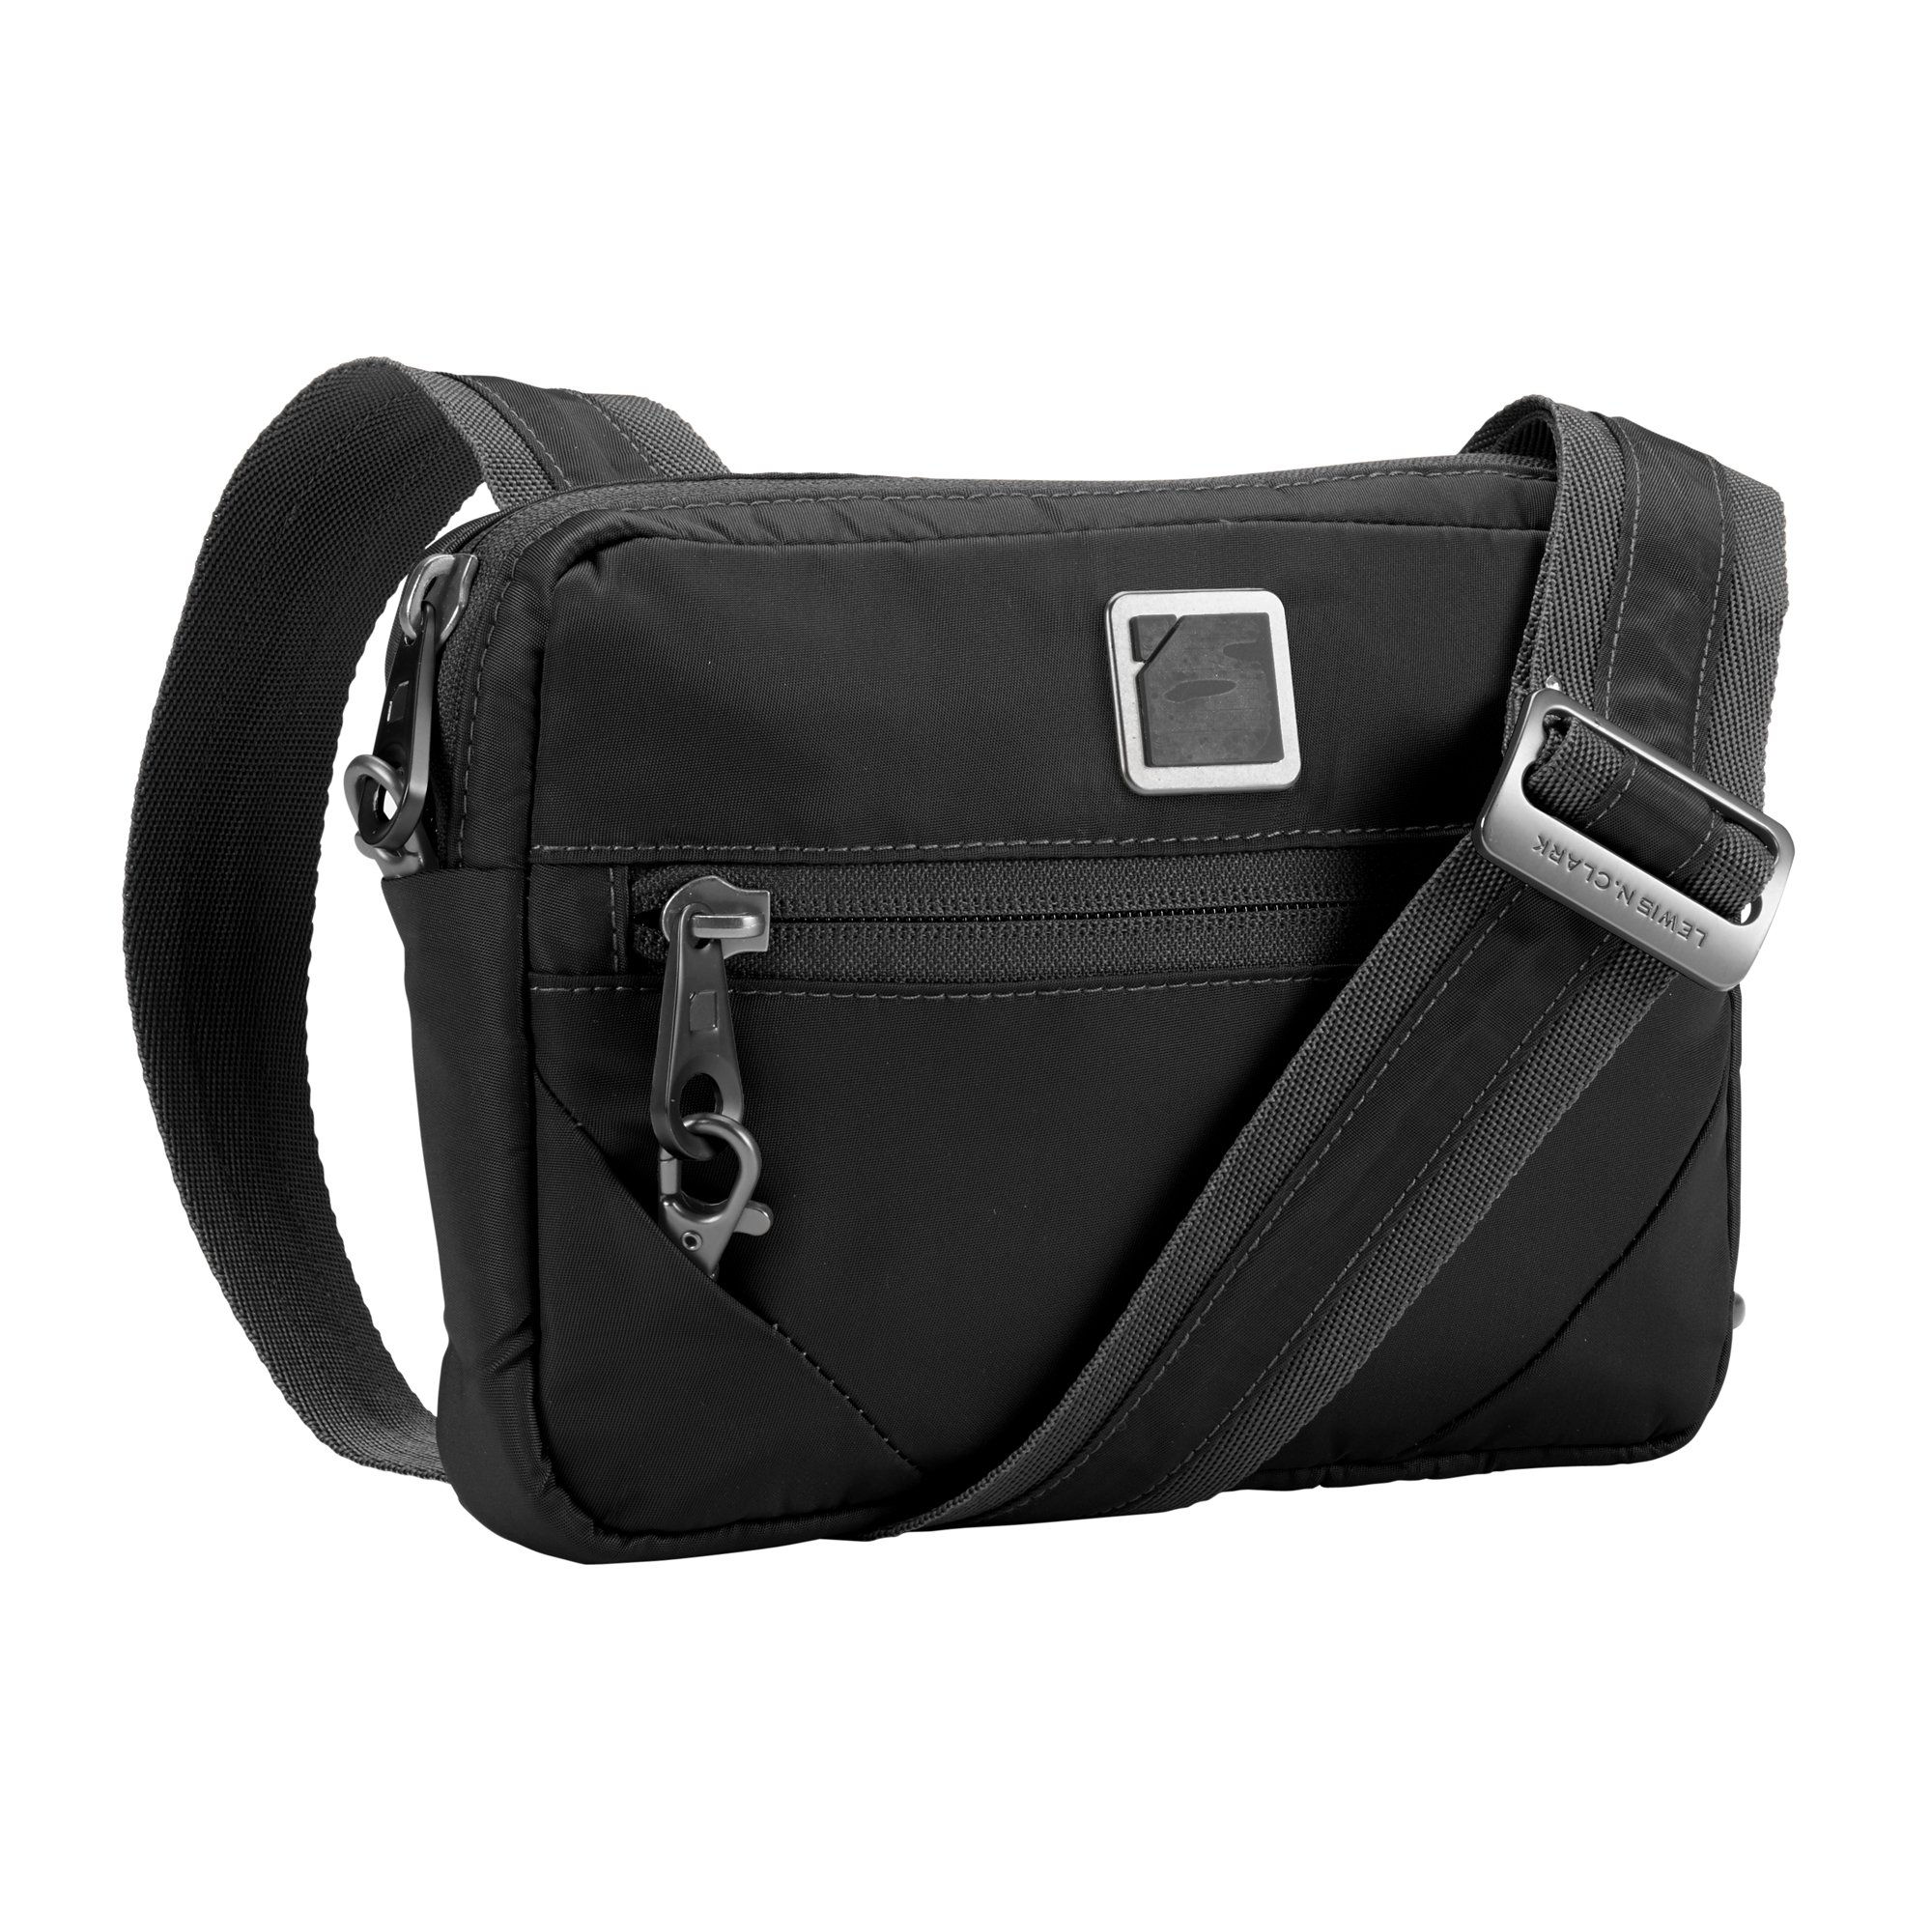 Lewis N. Clark Commuter + Messenger Bag for Women with RFID Blocking Anti-theft Technology & Adjustable Shoulder Strap, Onyx